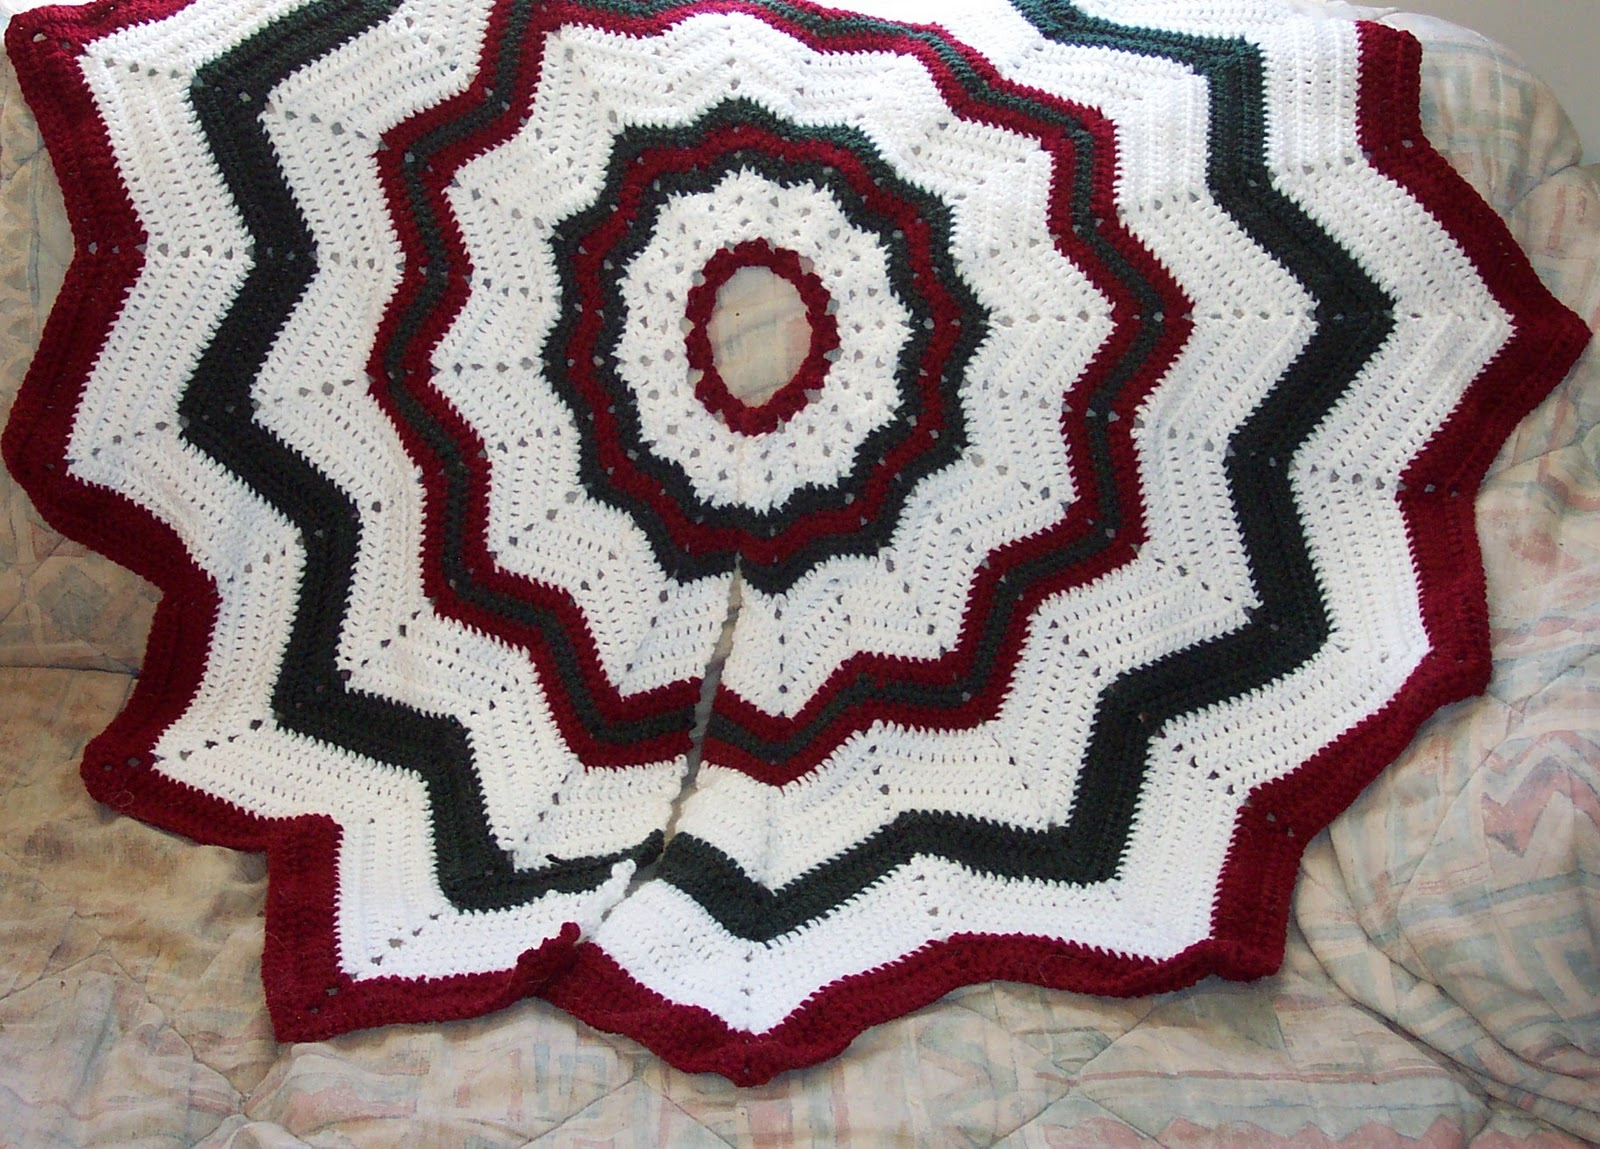 Easy Knitting Pattern For Christmas Tree Skirt : Smoothfox crochet and knit don t forget the christmas